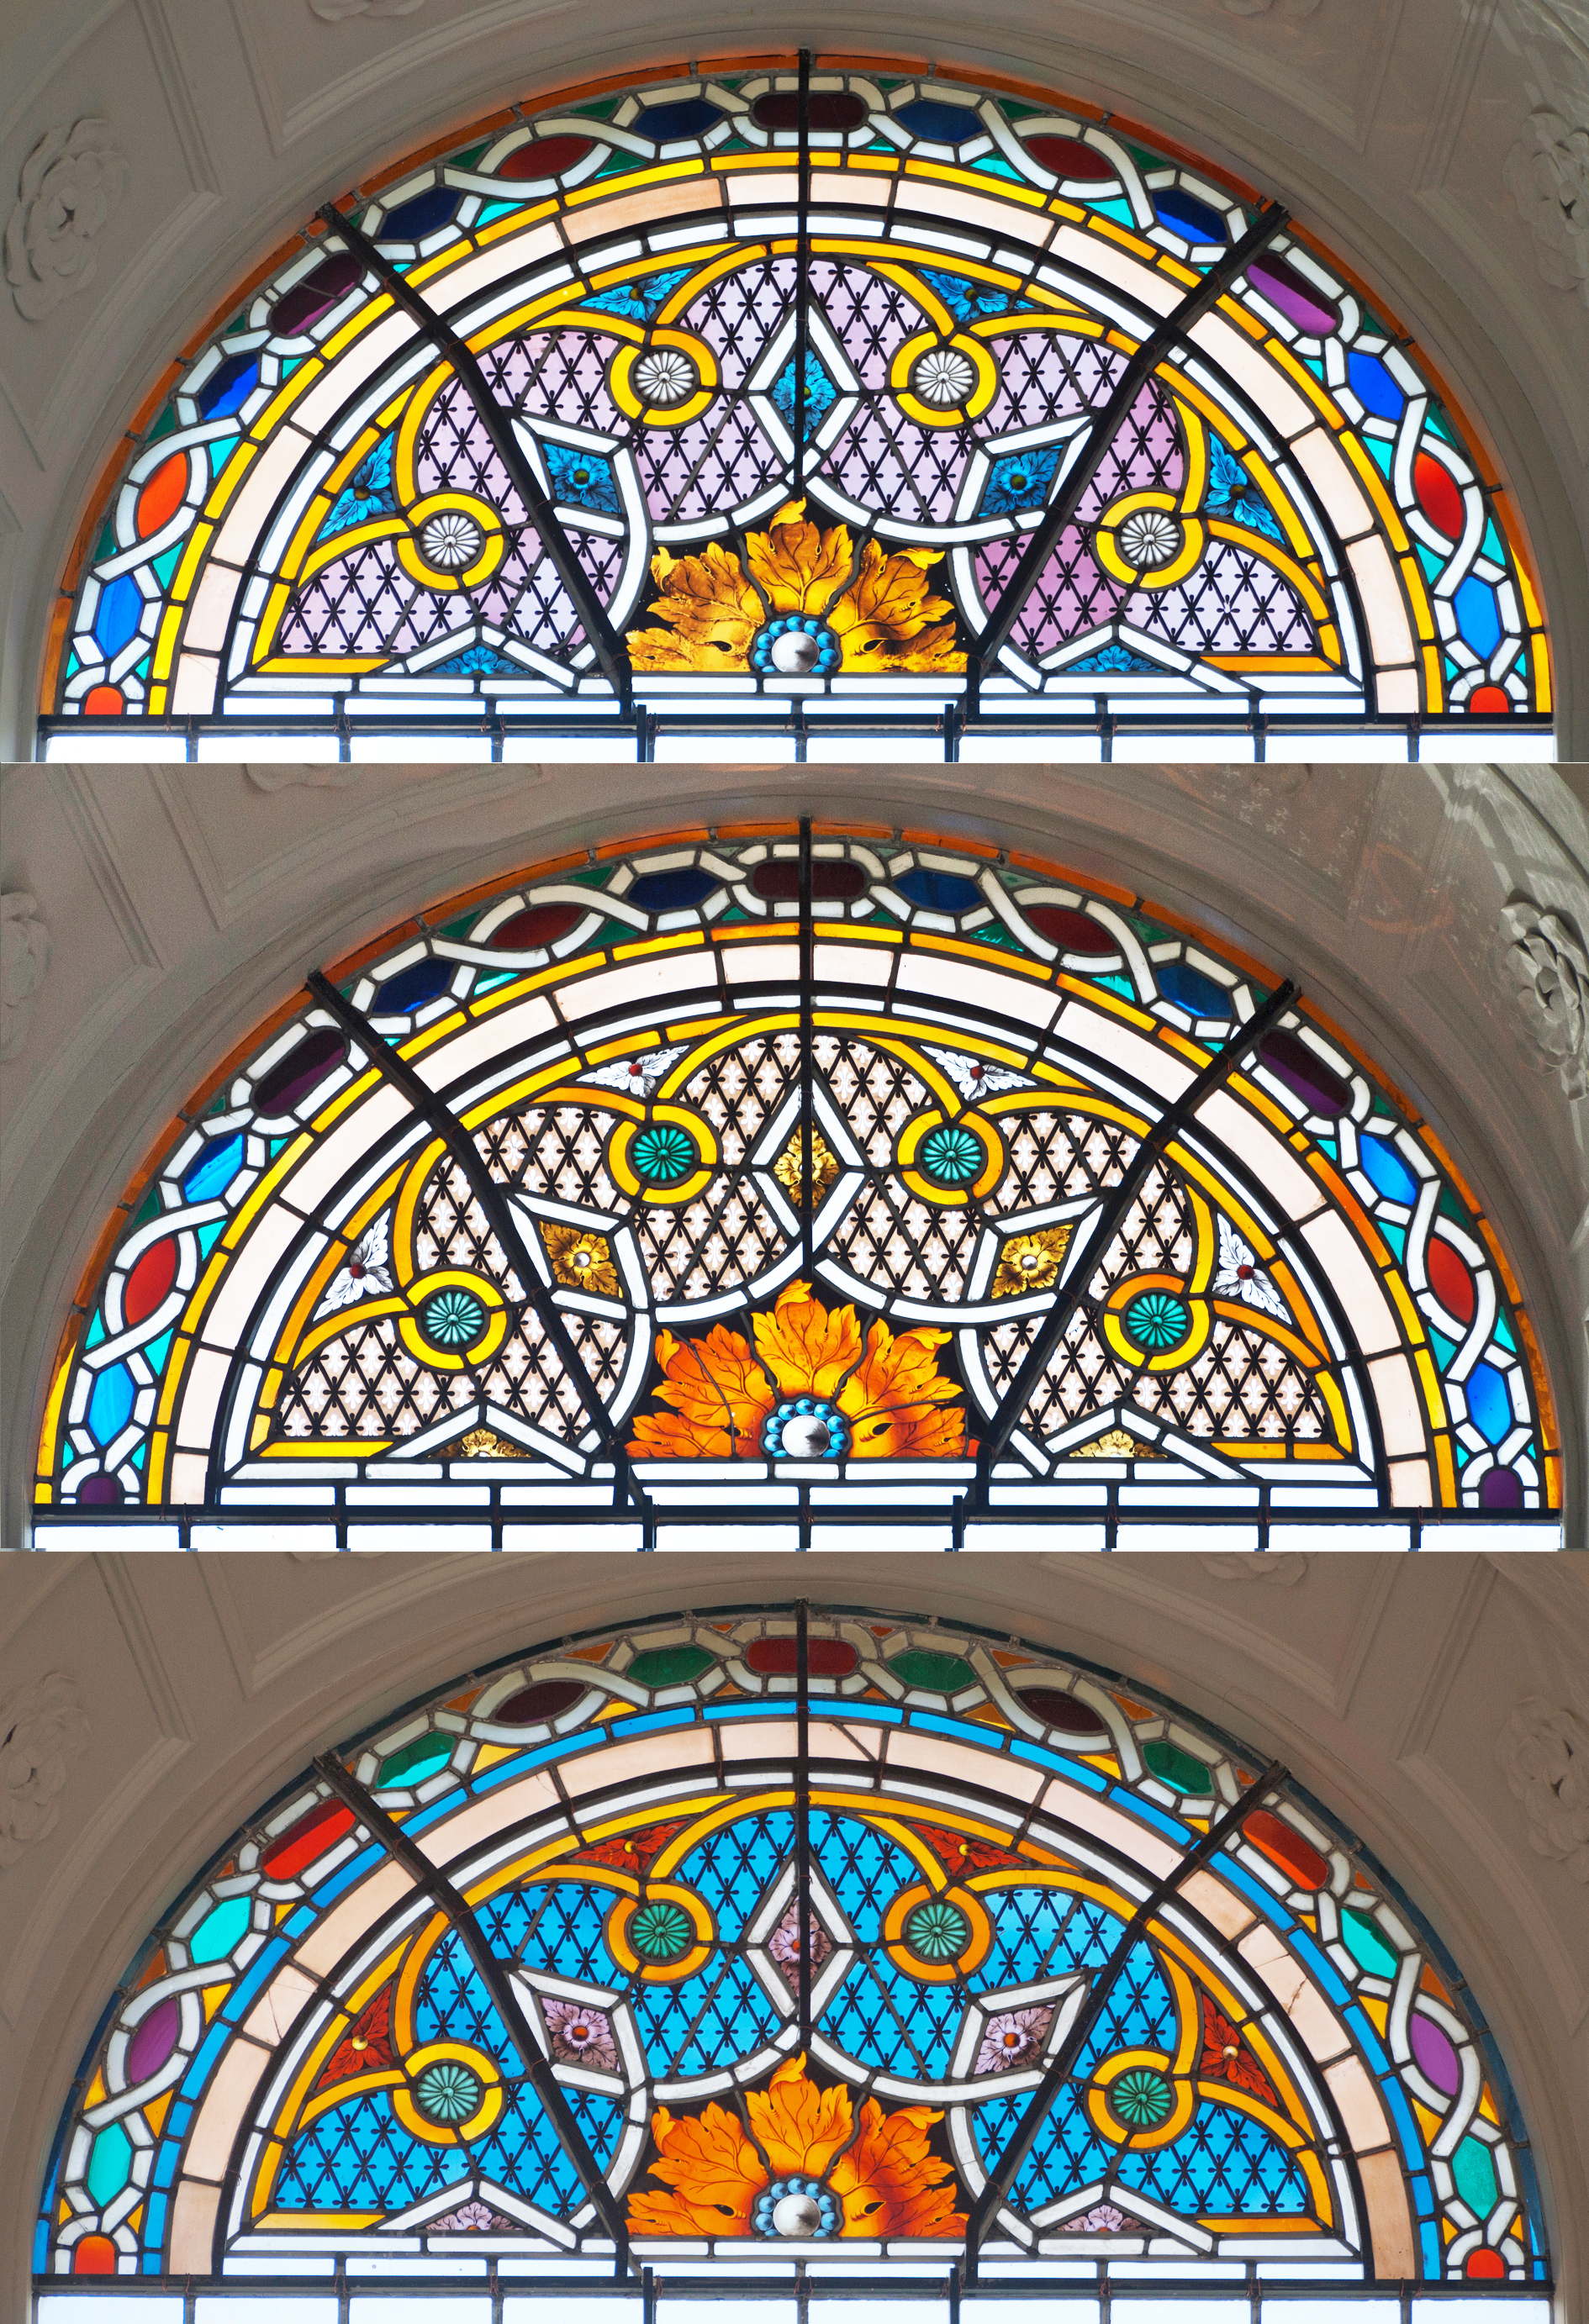 Three restored C18th stained glass window tops in the north side of the Chapel